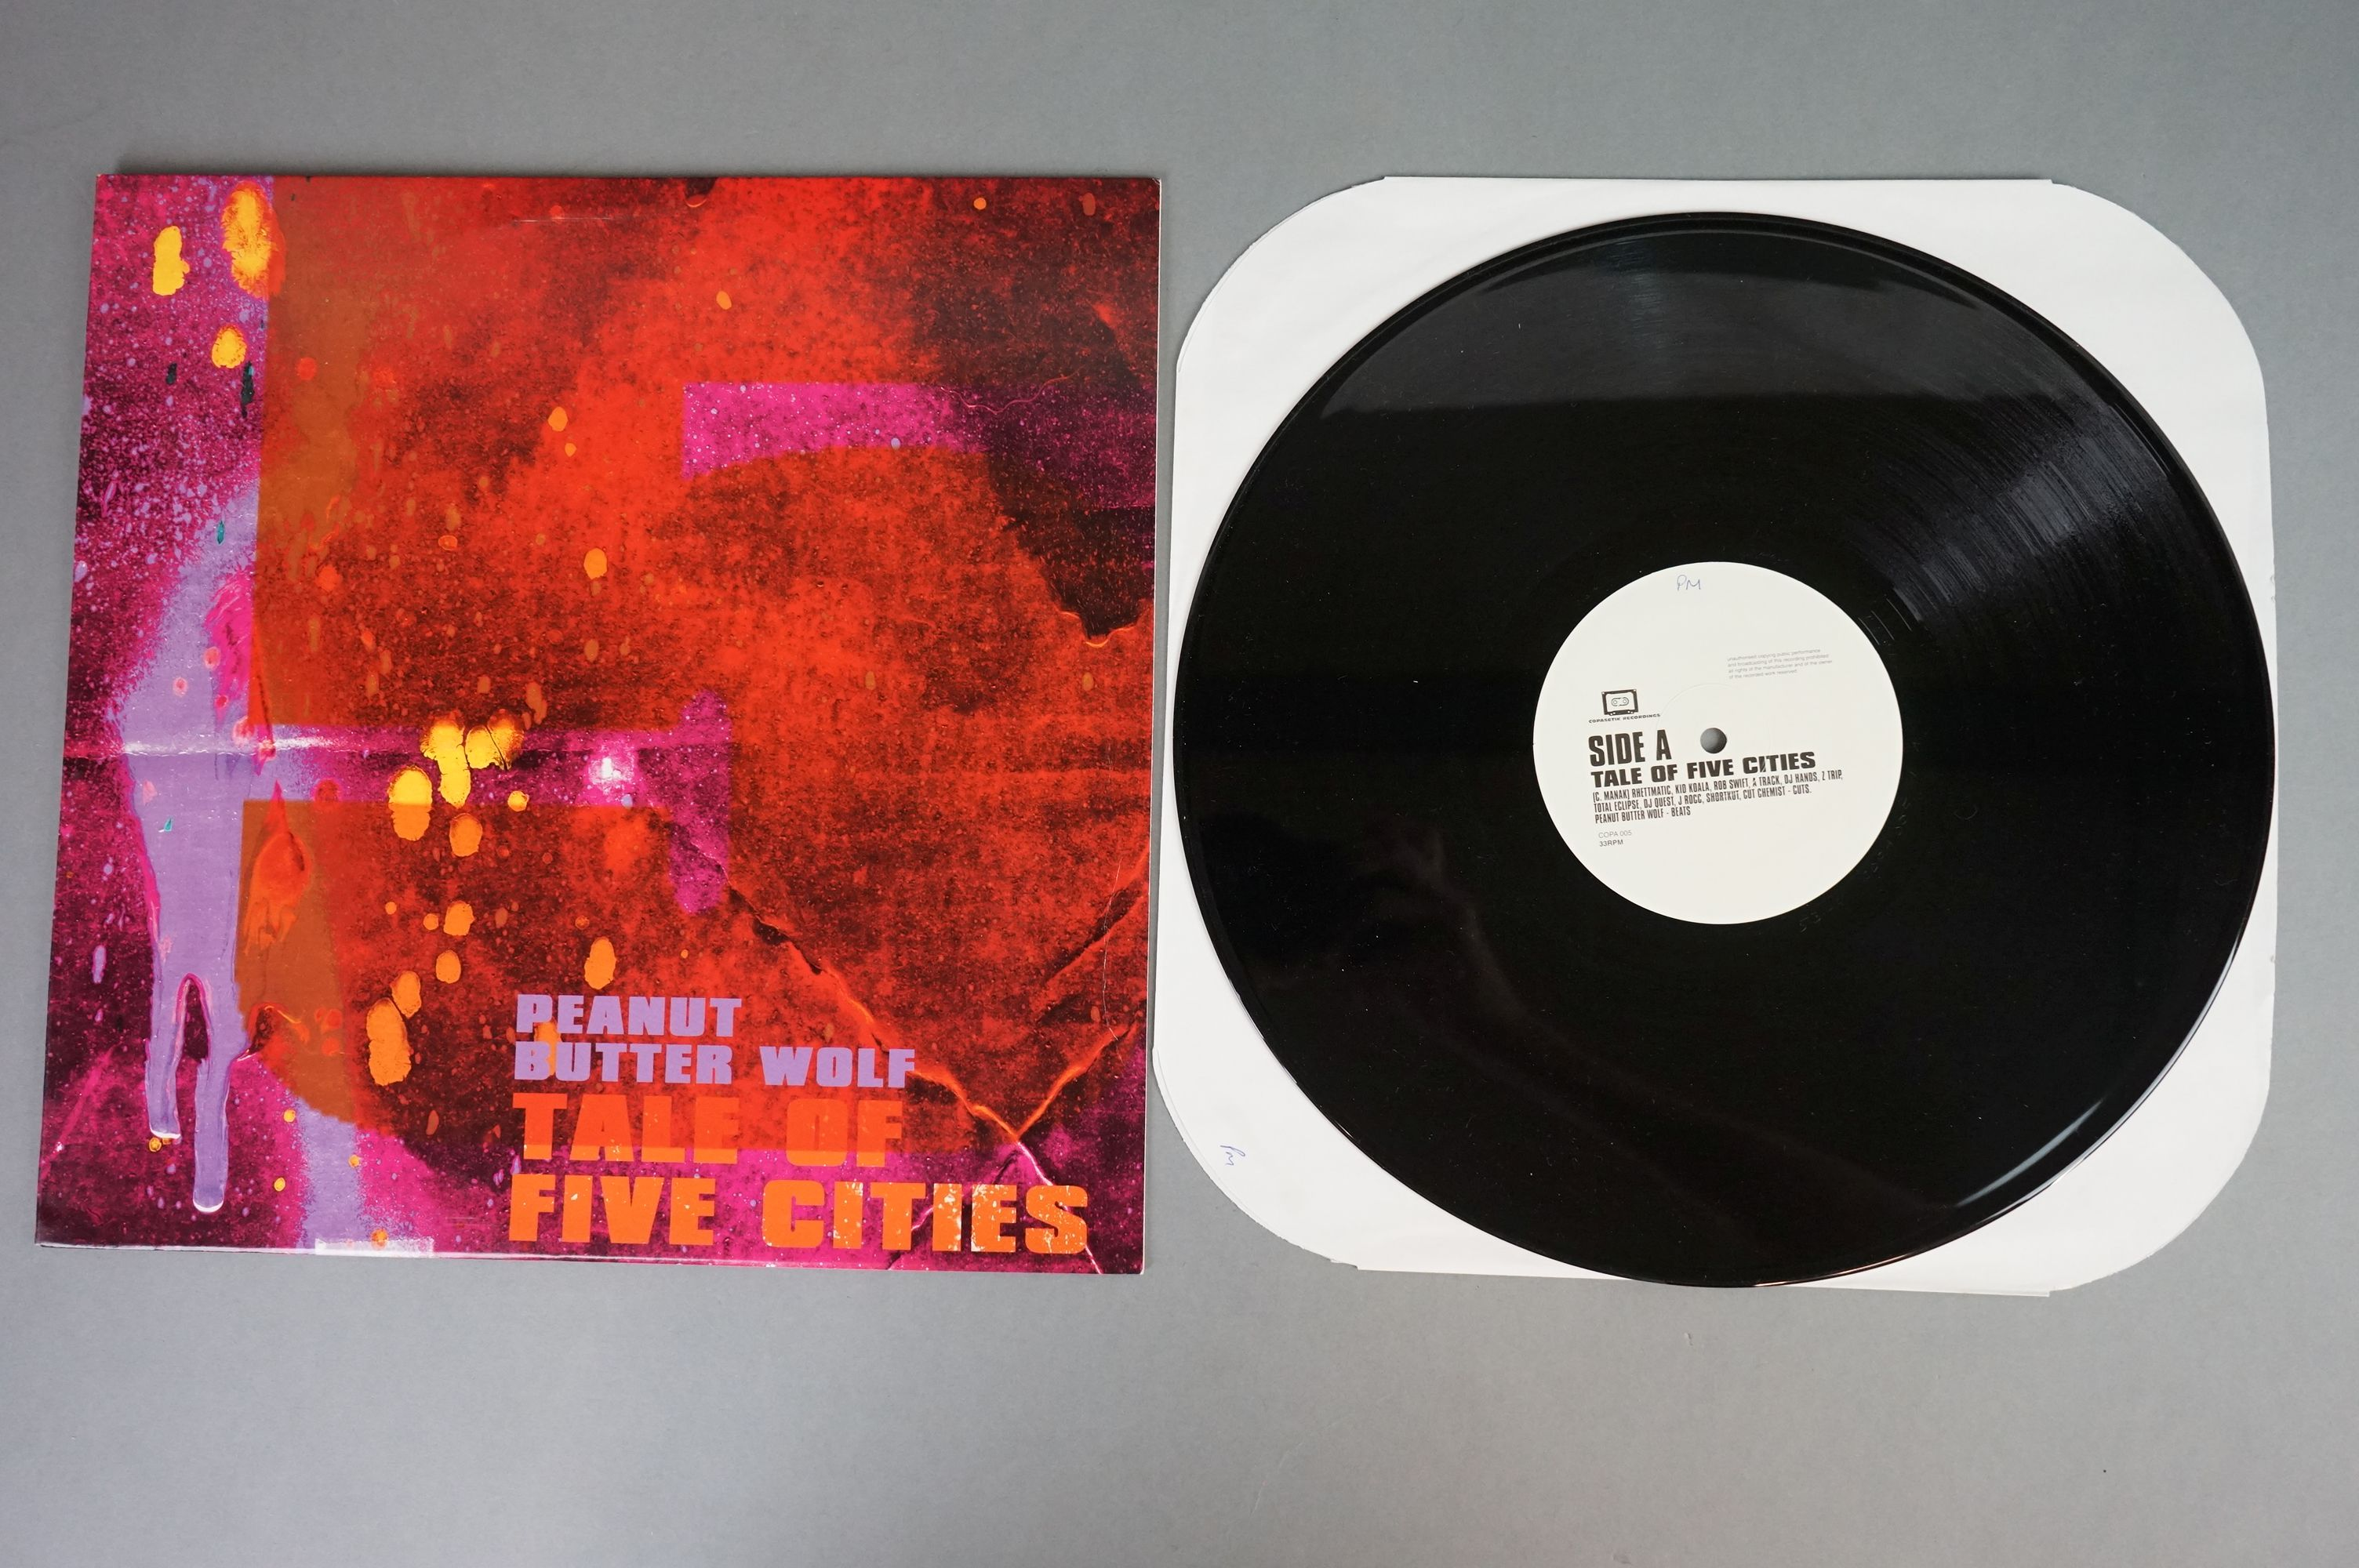 """Vinyl - Slurped Too! 2LP Compilation and 3 x Peanut Butter Wolf 12"""" singles to include Run The - Image 7 of 11"""